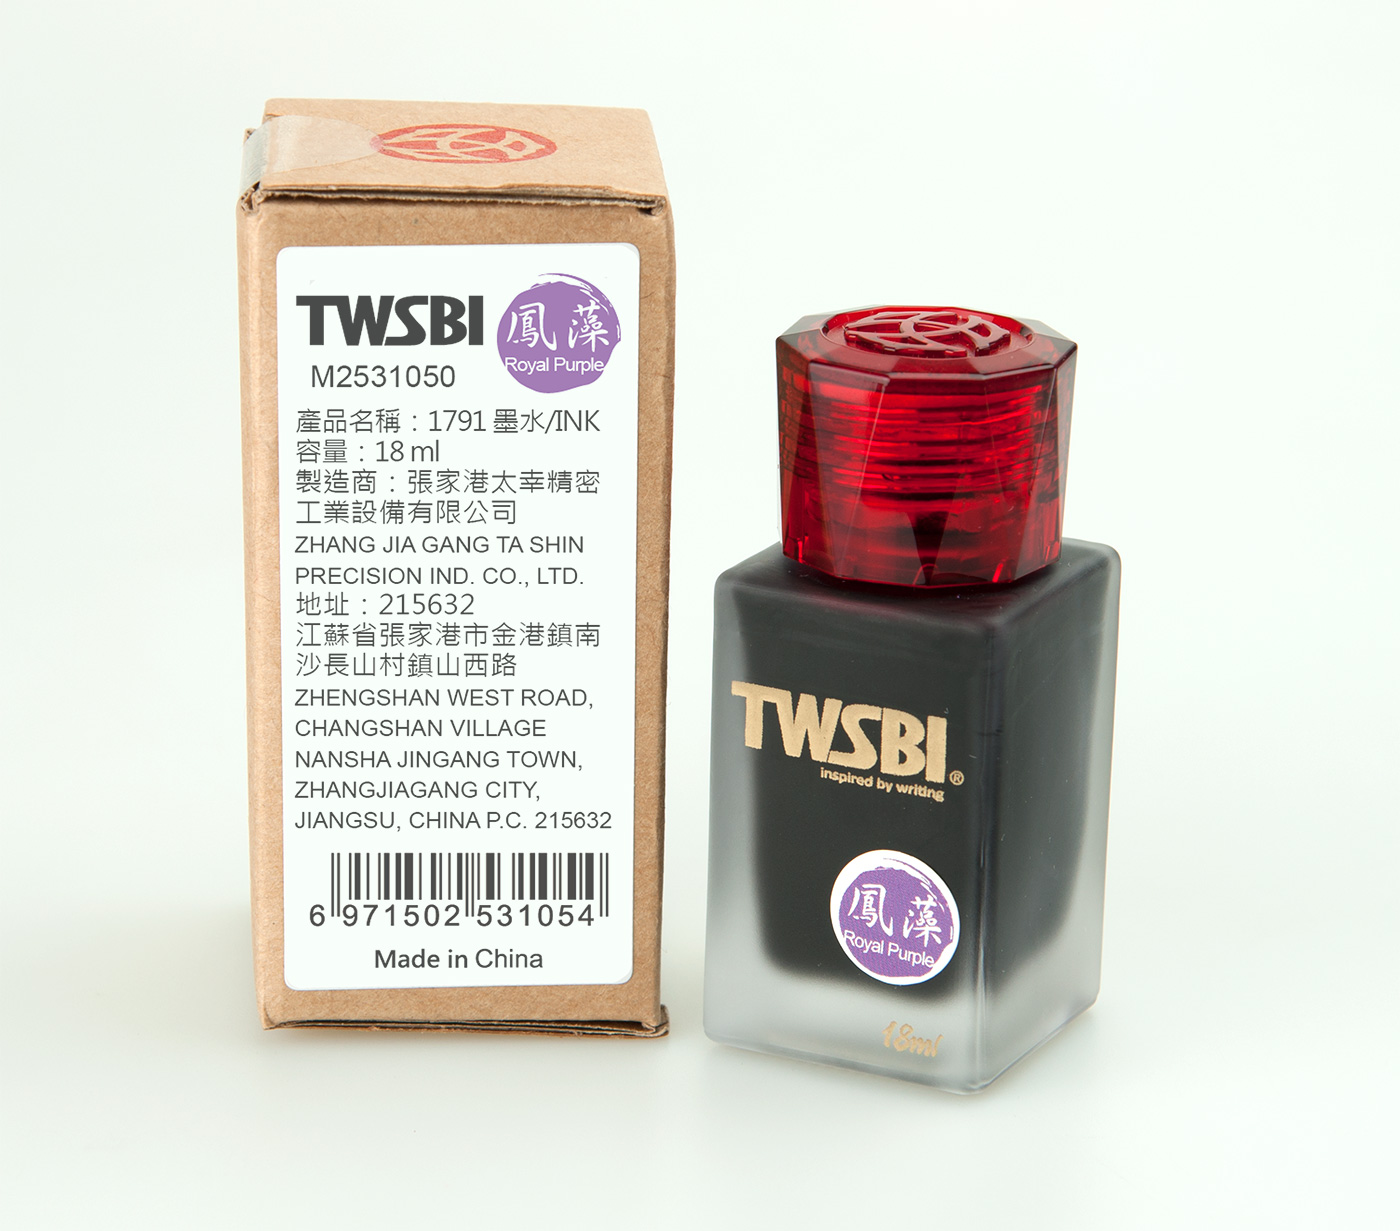 TWSBI 1791 Royal Purple 18ml